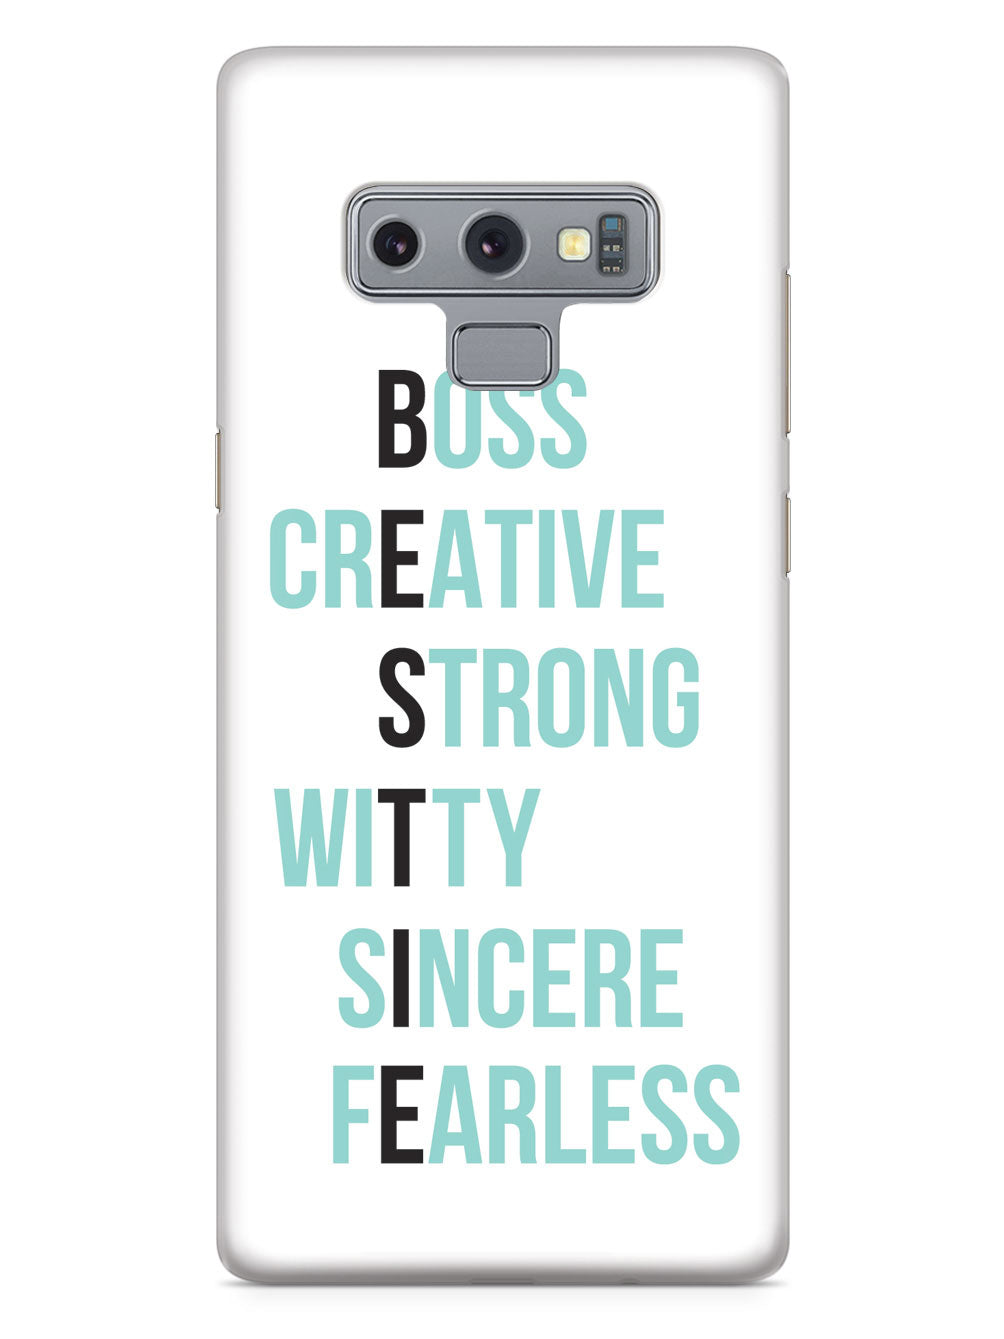 BESTIE - Teal on White Case